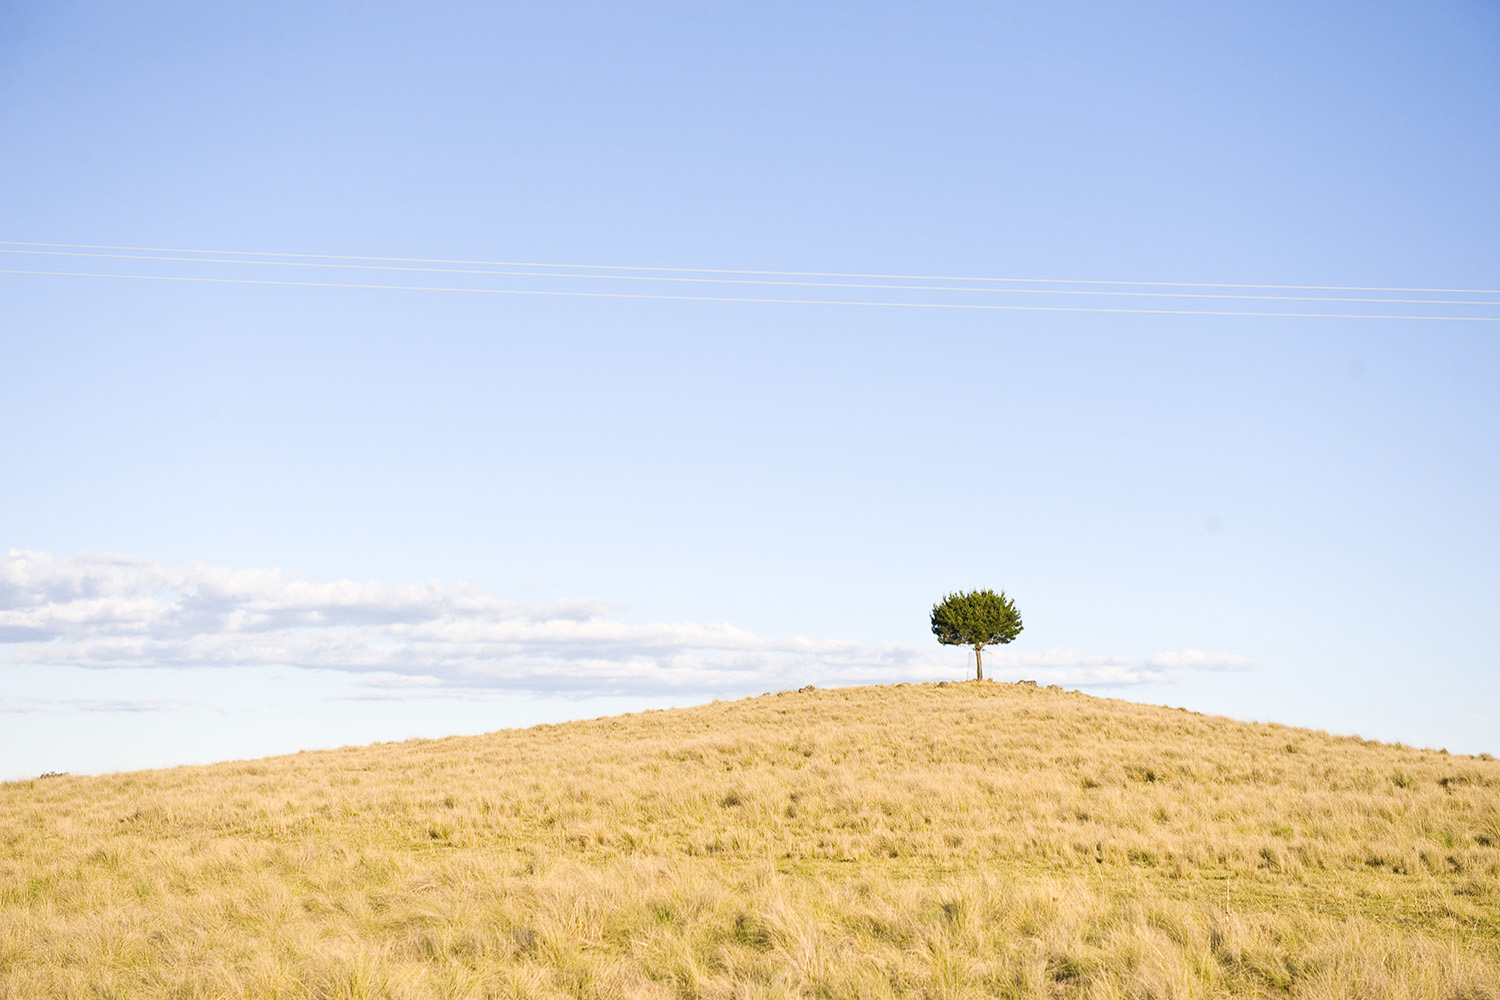 image of AARONTAIT COPYRIGHTED 2014 378 RURAL PHOTOGRAPHER FARM LIFE AGRICULTURE WOOL BEEF STOCKMAN MUSTER CATTLE FARM AUSTRALIAN LONE TREE HILL ALONE SOLITUDE LANDSCAPE